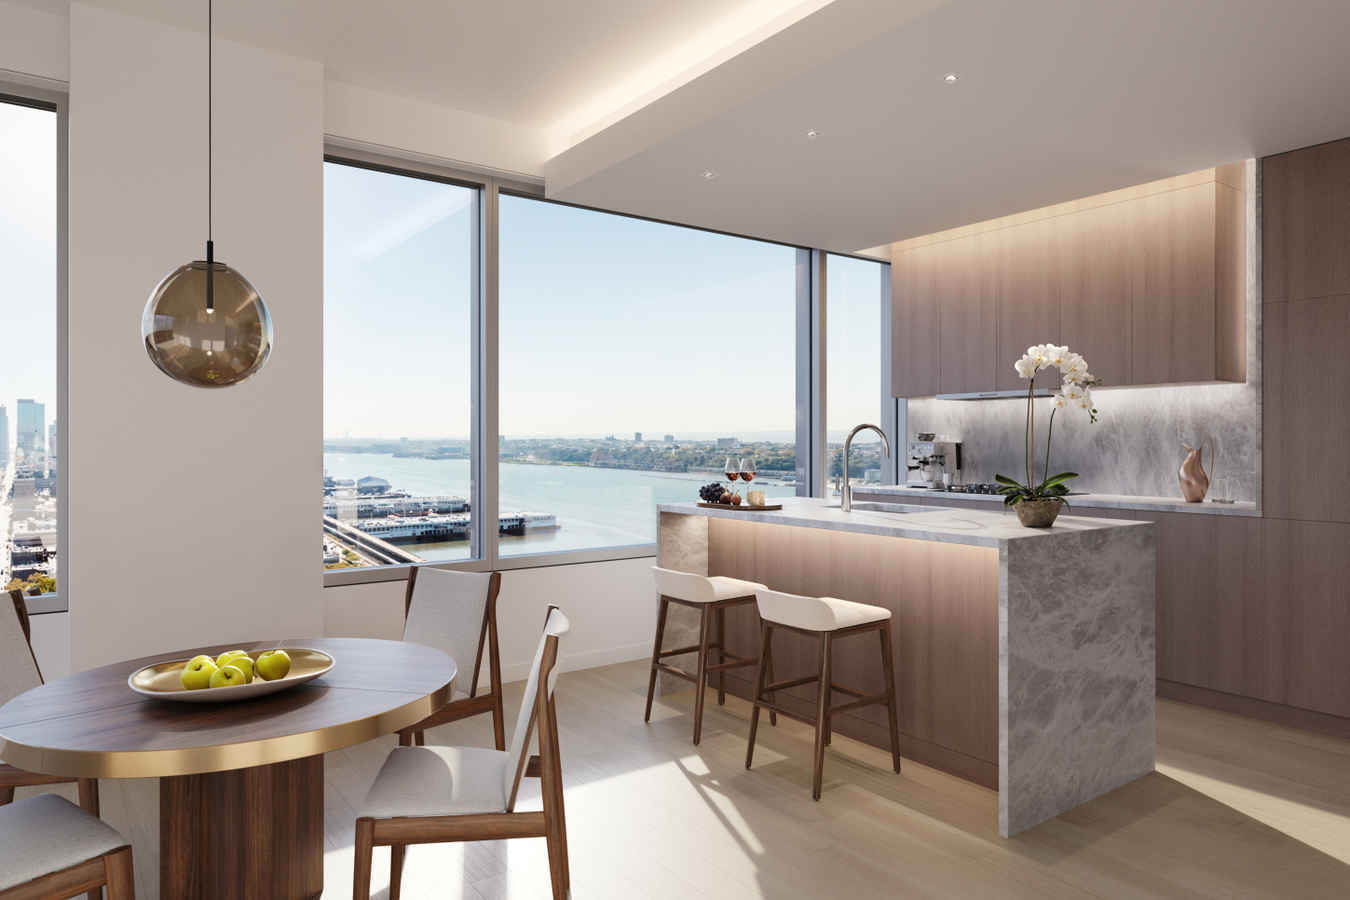 Apartment for sale at 611 West 56th Street, Apt 5-C